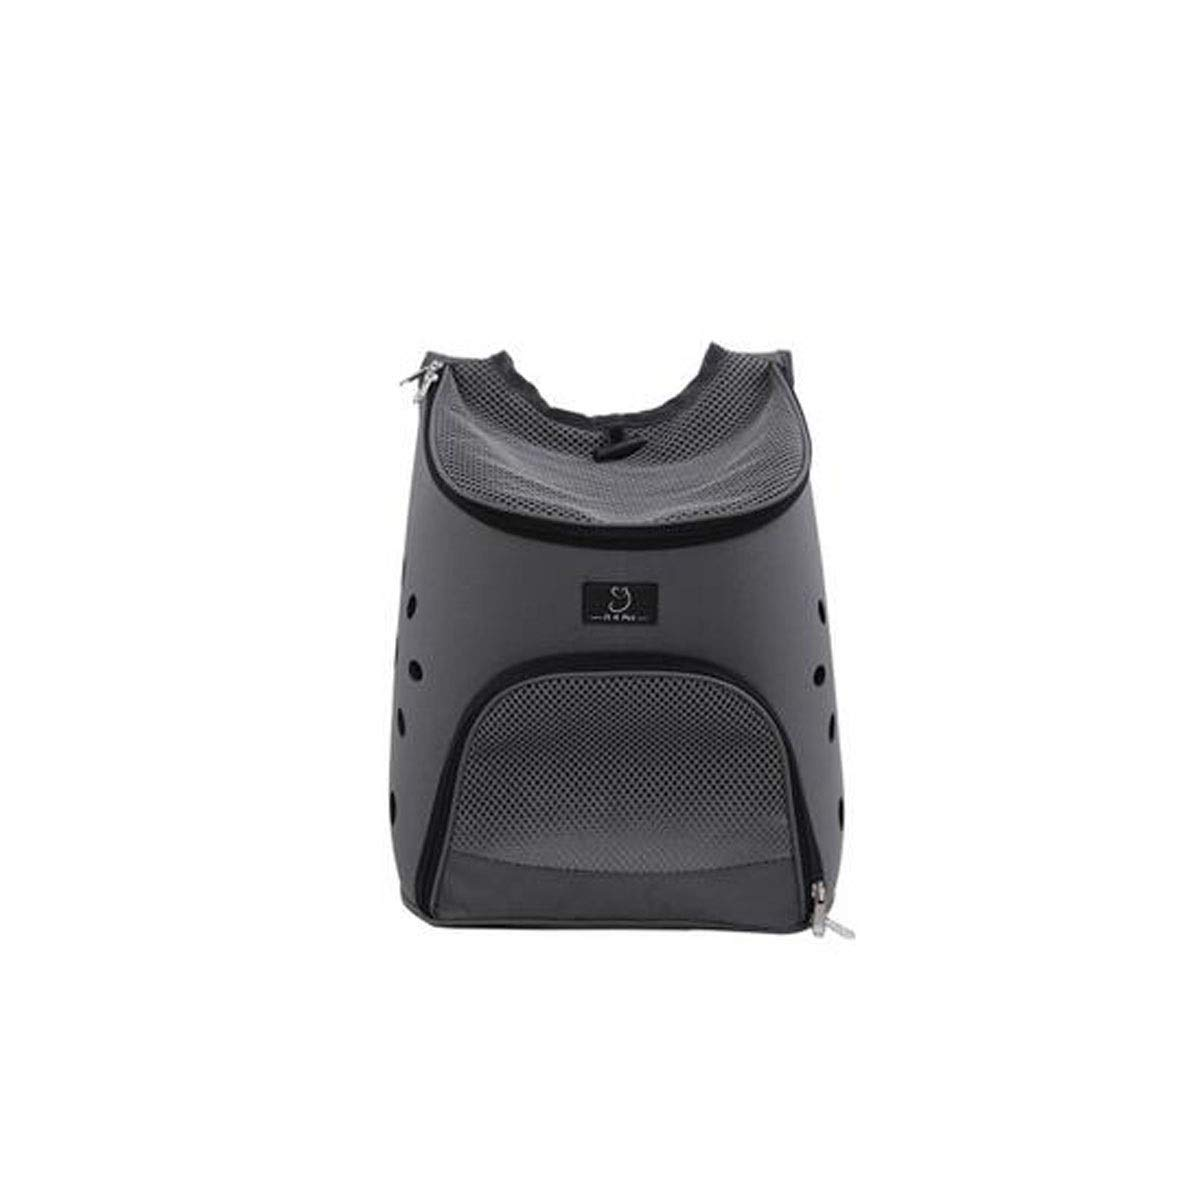 Black Guyuexuan Lightweight Pet Backpack, High Breathable Carrying Case, Suitable For Dogs, Cats, Pets, Camping, Suitable For Small And Medium Pets.Black, bluee, Pink Pet Travel Essentials